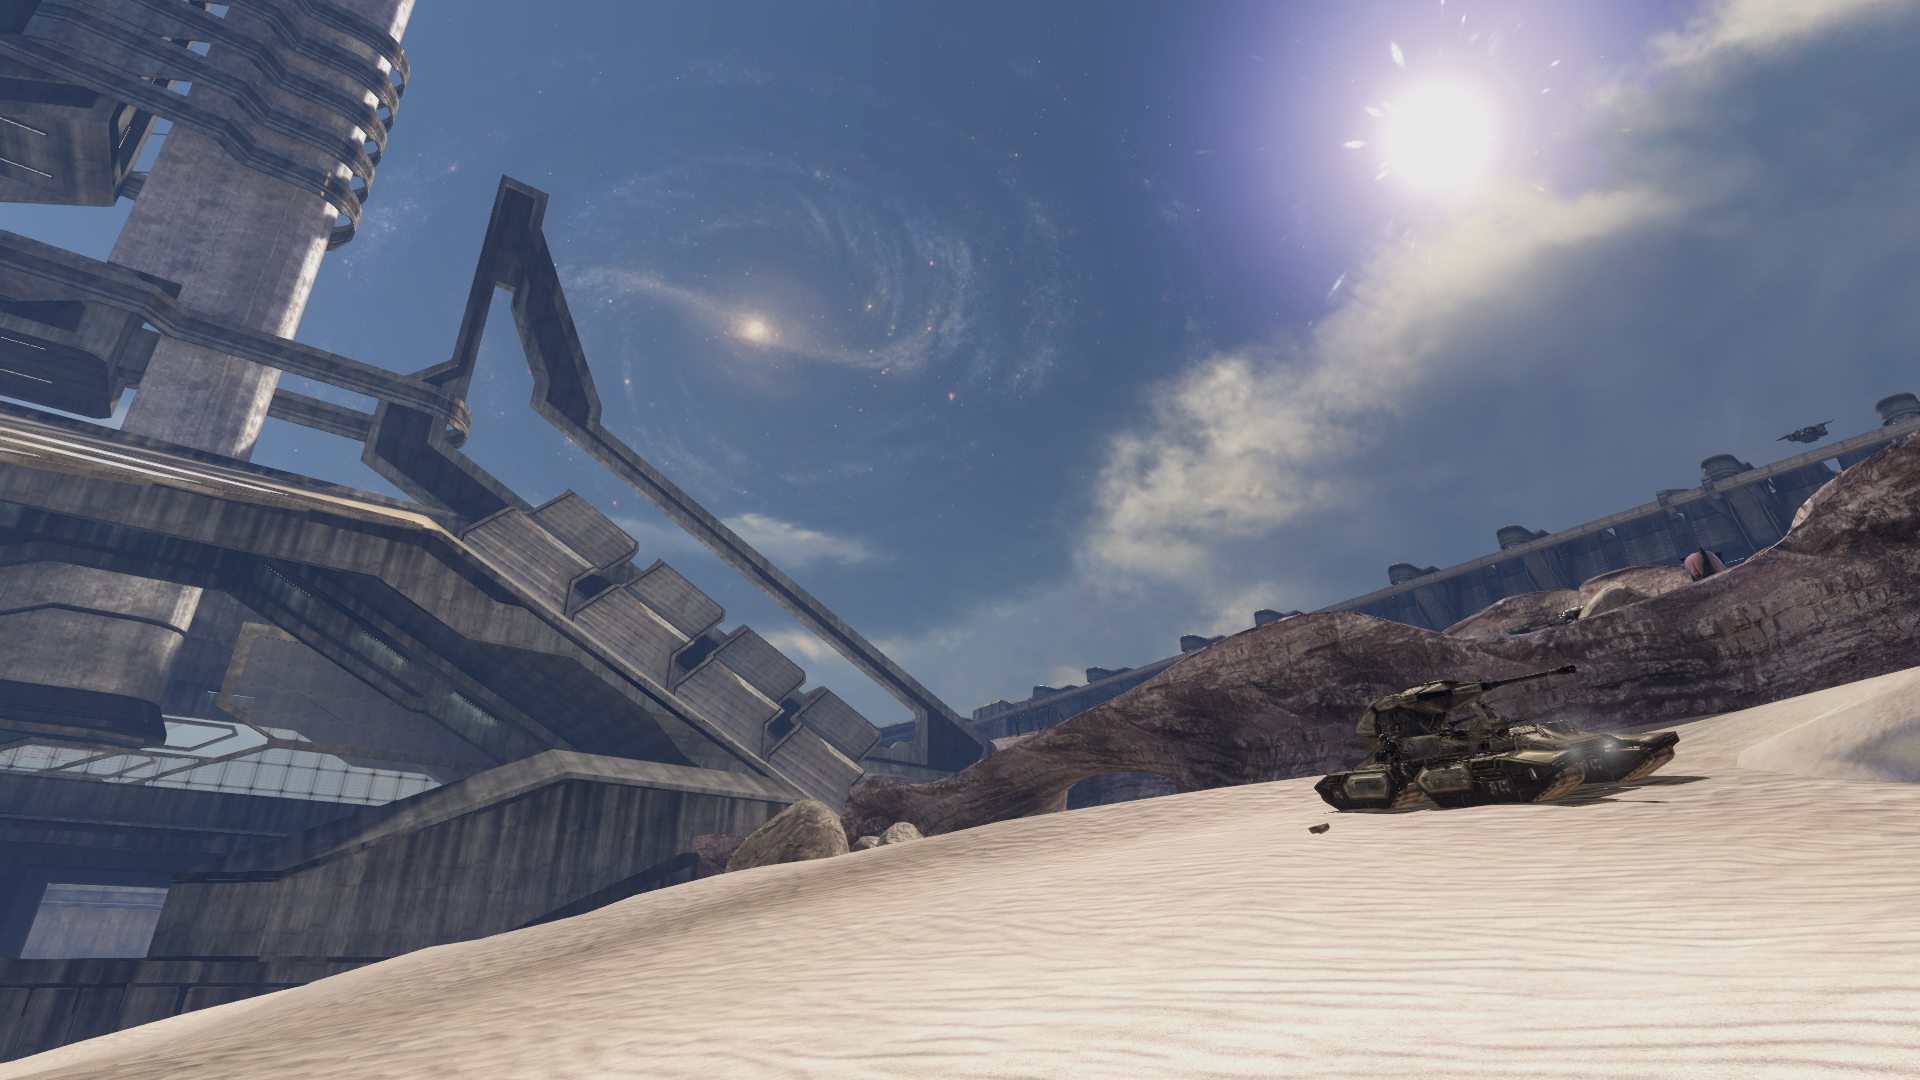 scorpion sitting on sand in halo 3 the ark